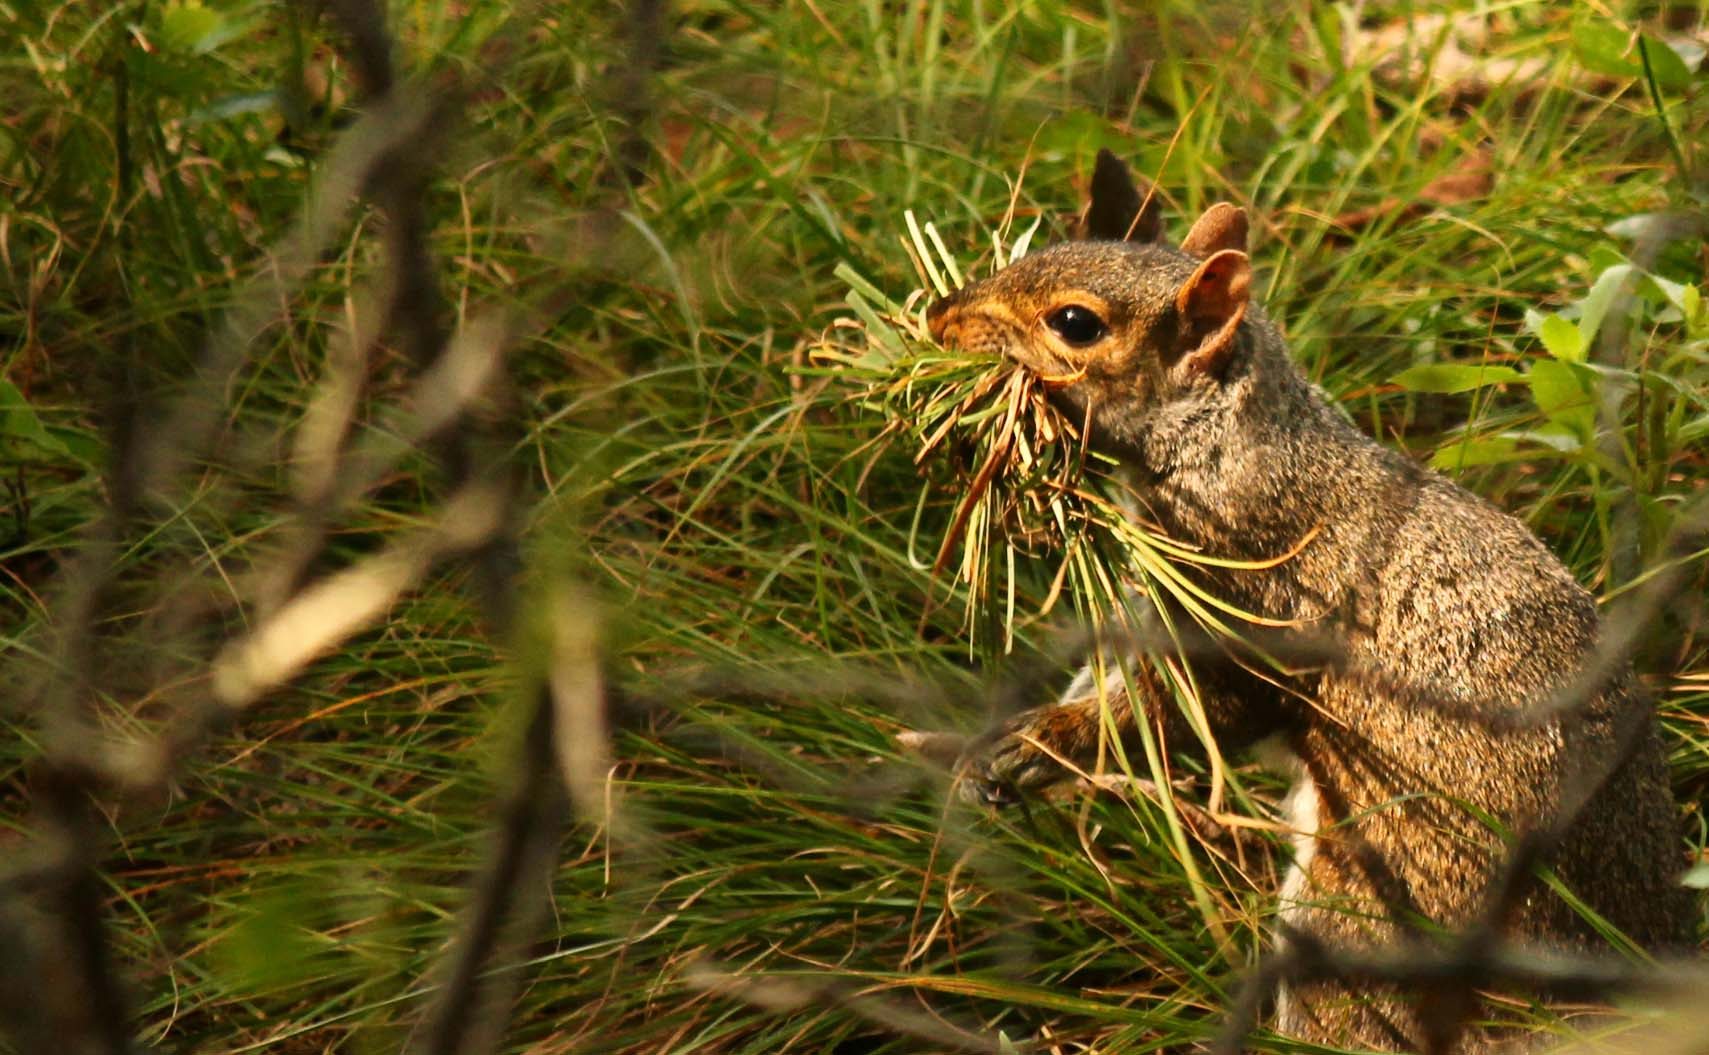 Squirrel with mouthful of grass